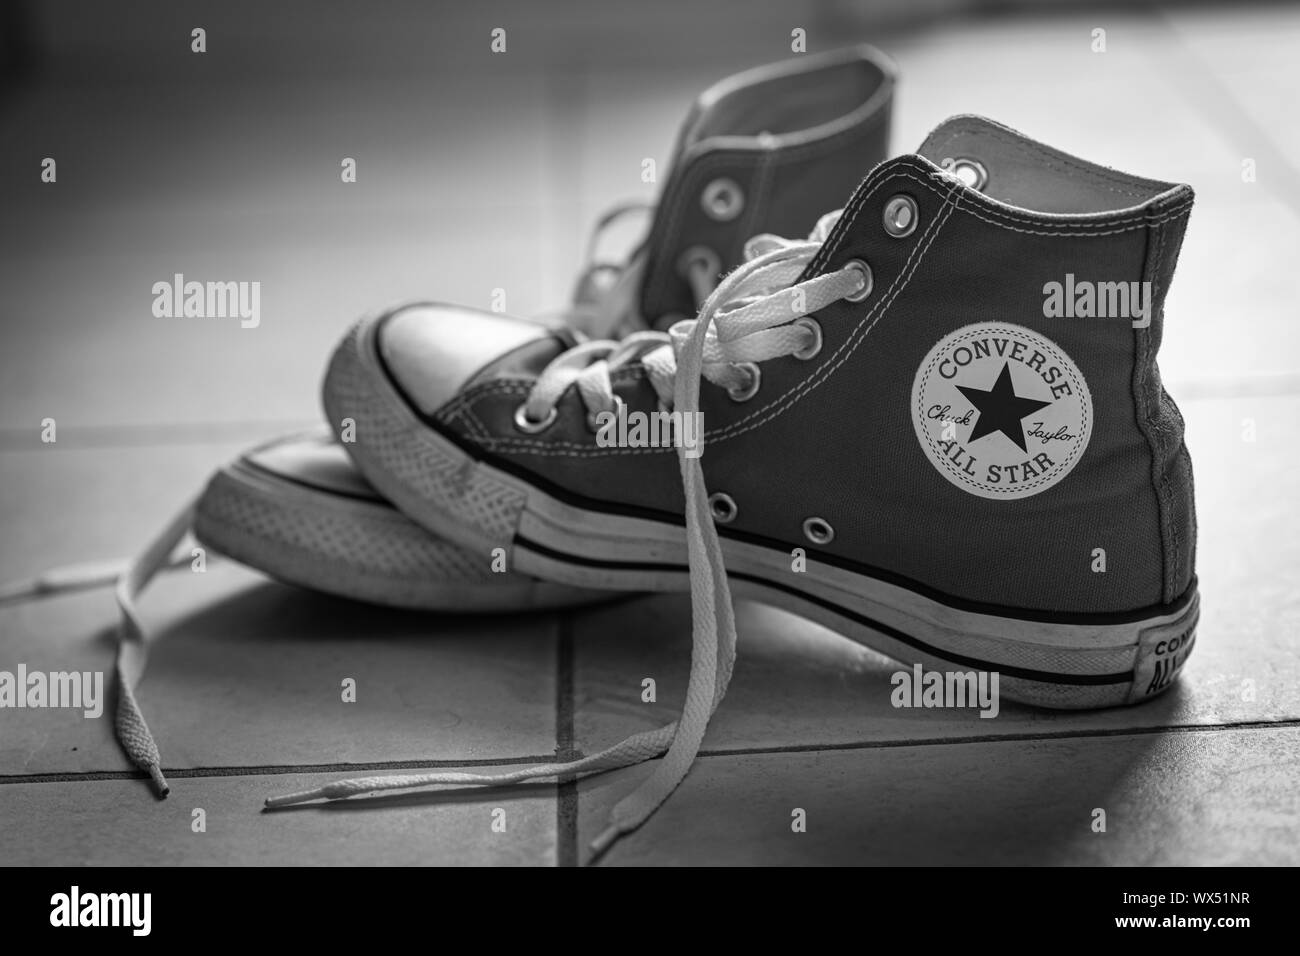 Larry Belmont Guarda la ropa Órgano digestivo  Converse All Stars High Resolution Stock Photography and Images - Alamy